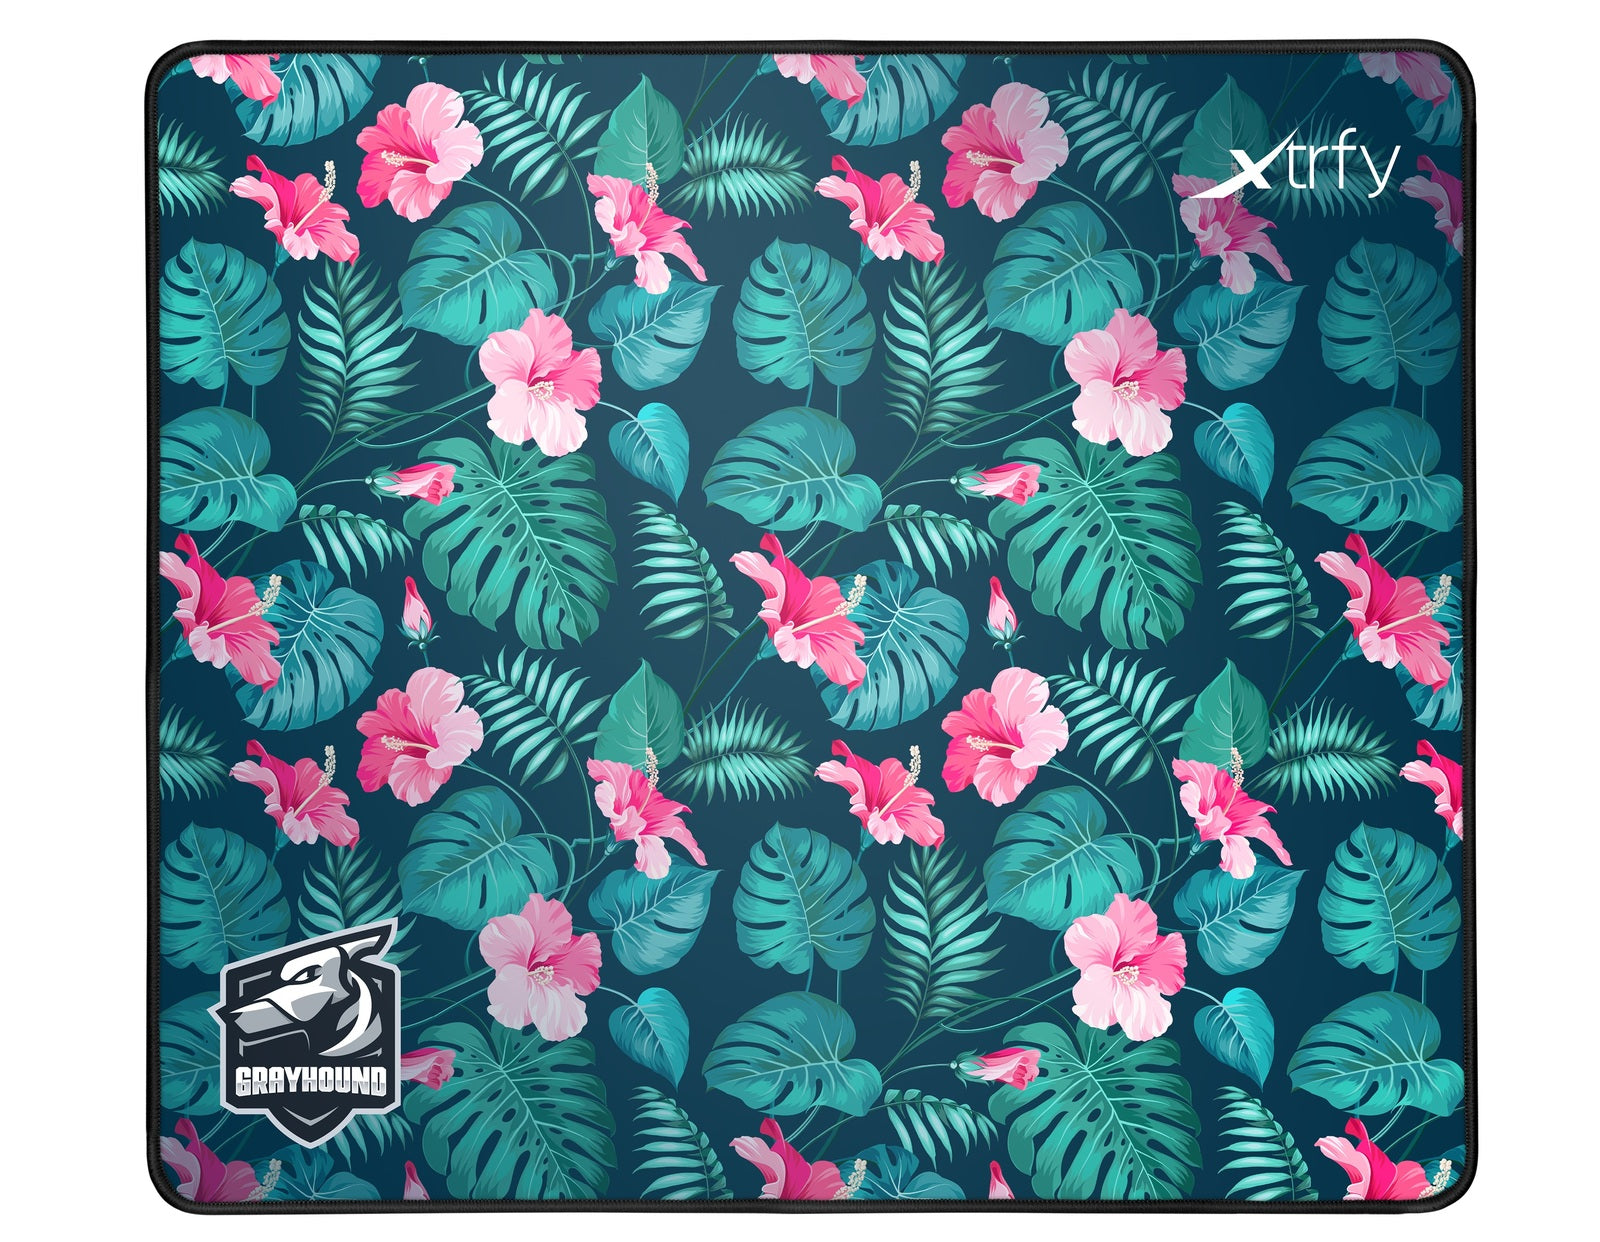 XTRFY GP1 Gaming Mousepad - Large Grayhound Tropical - PC Games